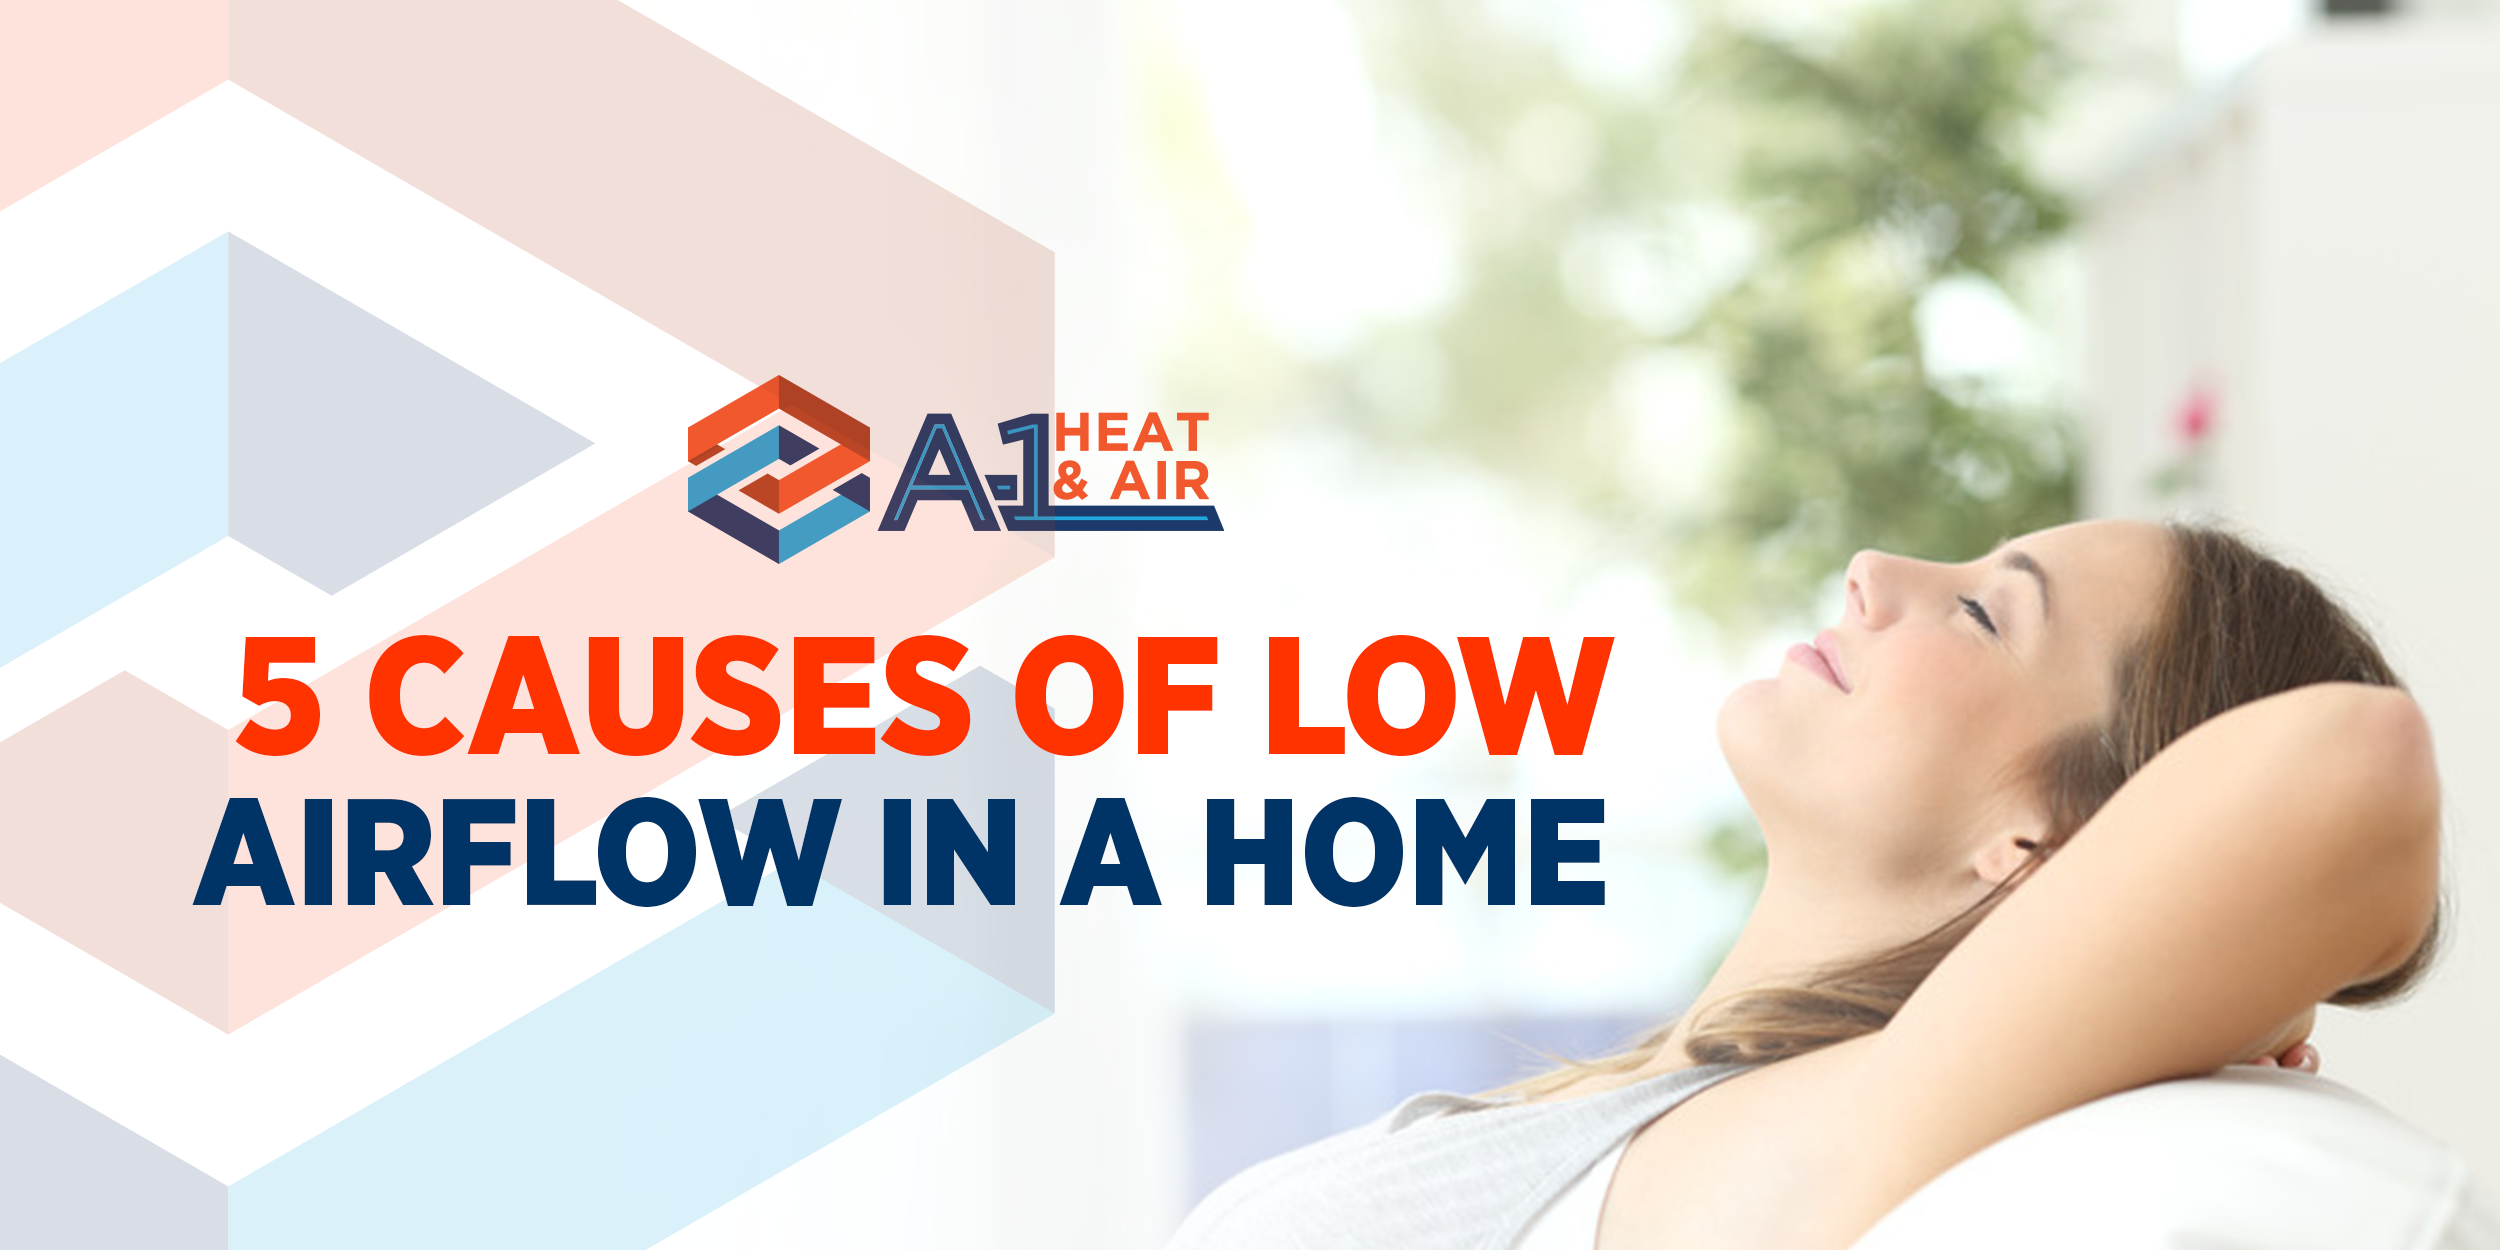 5 Causes of Low Airflow in a Home